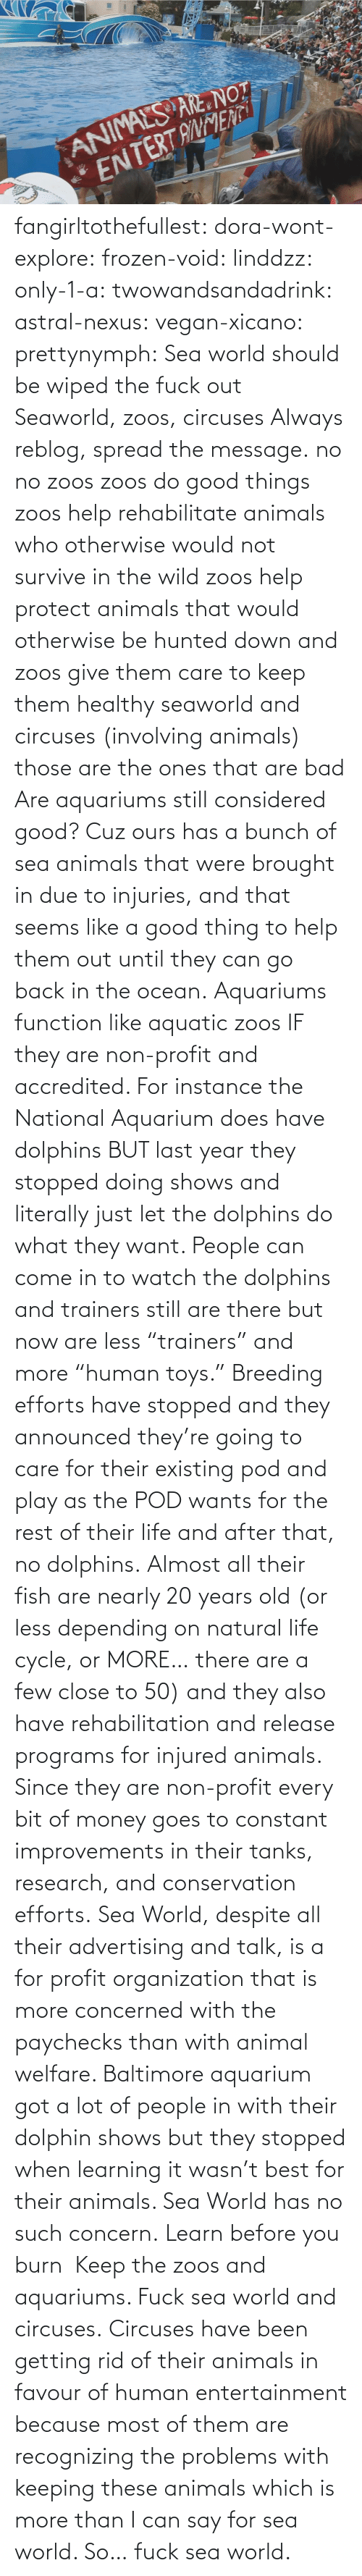 "What They: fangirltothefullest:  dora-wont-explore:  frozen-void:  linddzz:  only-1-a:  twowandsandadrink:  astral-nexus:  vegan-xicano:  prettynymph:  Sea world should be wiped the fuck out  Seaworld, zoos, circuses  Always reblog, spread the message.  no no zoos zoos do good things zoos help rehabilitate animals who otherwise would not survive in the wild zoos help protect animals that would otherwise be hunted down and zoos give them care to keep them healthy seaworld and circuses (involving animals) those are the ones that are bad  Are aquariums still considered good? Cuz ours has a bunch of sea animals that were brought in due to injuries, and that seems like a good thing to help them out until they can go back in the ocean.  Aquariums function like aquatic zoos IF they are non-profit and accredited. For instance the National Aquarium does have dolphins BUT last year they stopped doing shows and literally just let the dolphins do what they want. People can come in to watch the dolphins and trainers still are there but now are less ""trainers"" and more ""human toys."" Breeding efforts have stopped and they announced they're going to care for their existing pod and play as the POD wants for the rest of their life and after that, no dolphins. Almost all their fish are nearly 20 years old (or less depending on natural life cycle, or MORE… there are a few close to 50) and they also have rehabilitation and release programs for injured animals. Since they are non-profit every bit of money goes to constant improvements in their tanks, research, and conservation efforts. Sea World, despite all their advertising and talk, is a for profit organization that is more concerned with the paychecks than with animal welfare. Baltimore aquarium got a lot of people in with their dolphin shows but they stopped when learning it wasn't best for their animals. Sea World has no such concern.  Learn before you burn   Keep the zoos and aquariums. Fuck sea world and circuses.  Circuses have been getting rid of  their animals in favour of human entertainment because most of them are recognizing the problems with keeping these animals which is more than I can say for sea world. So… fuck sea world."